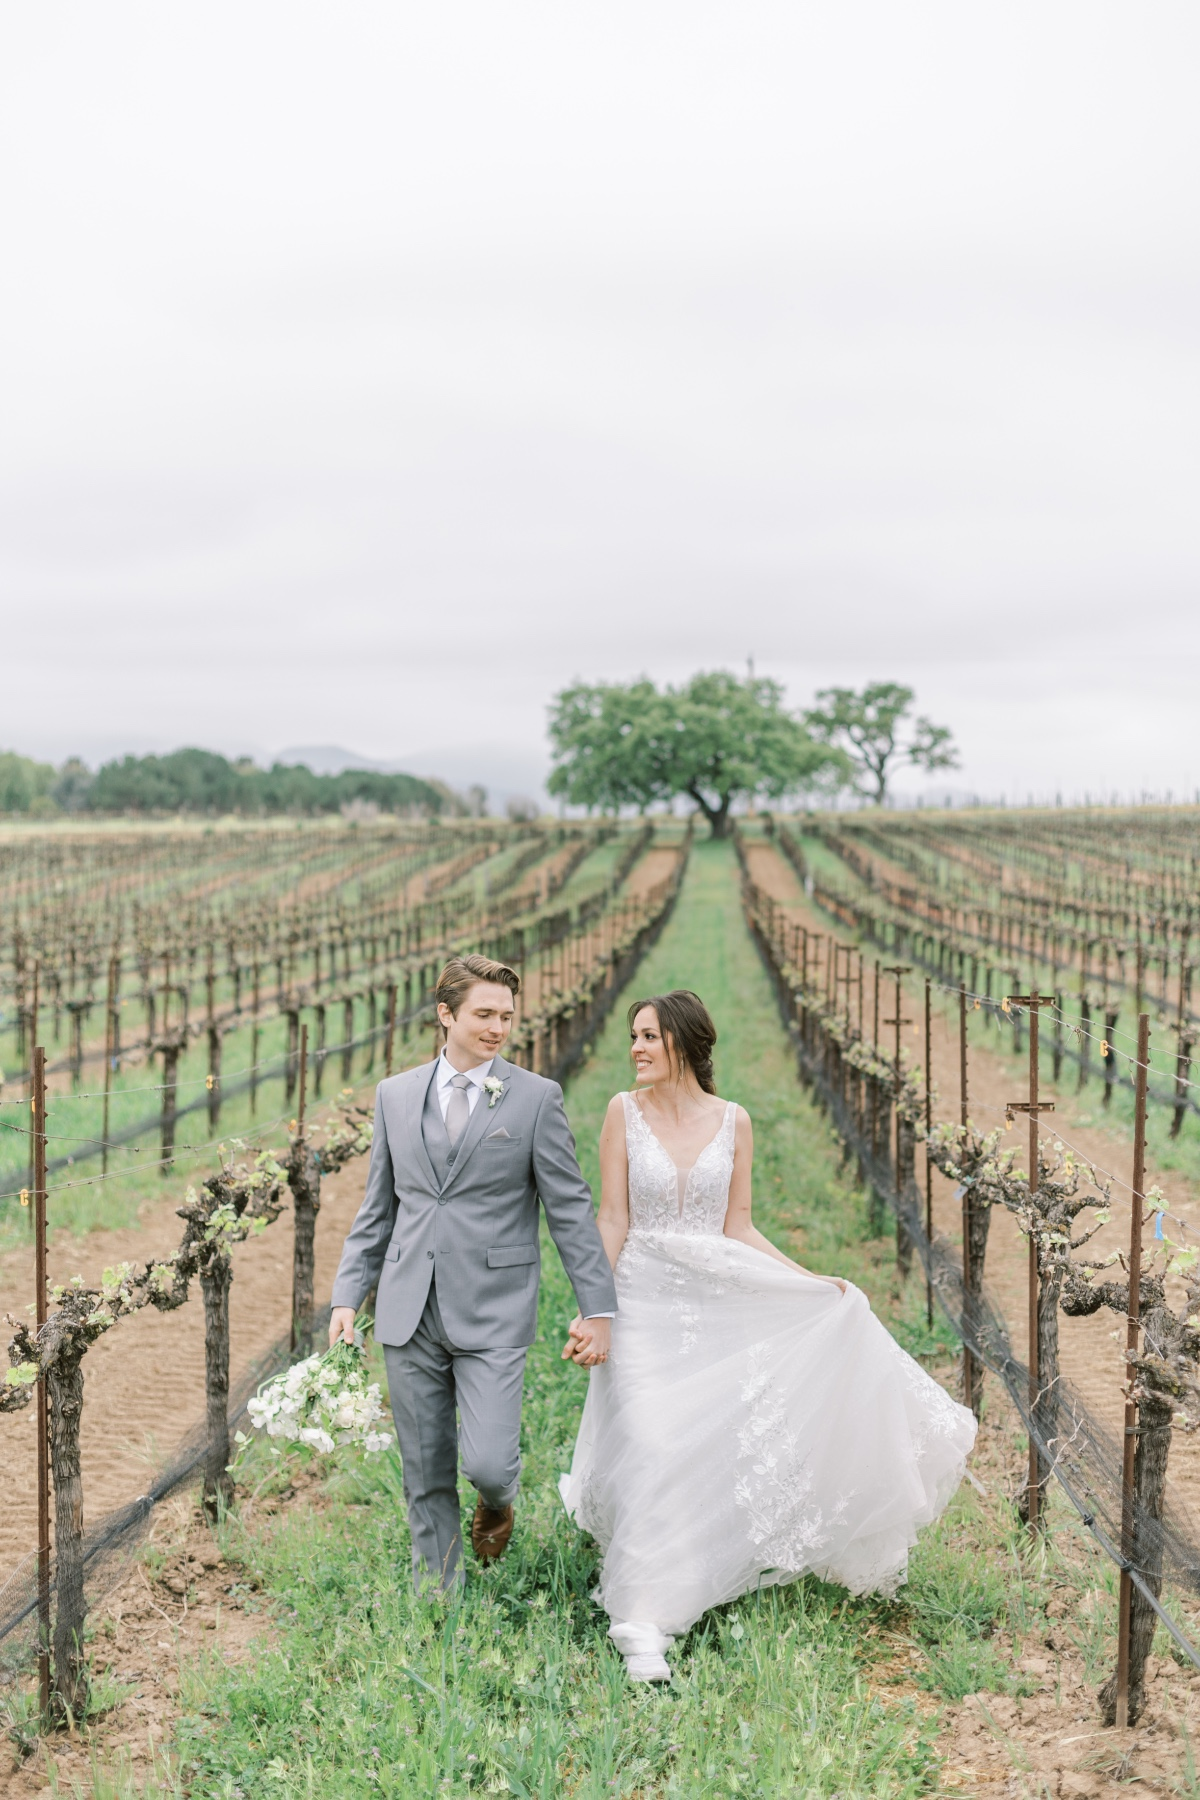 How To Make Your Wedding Stand Out At A Popular Venue